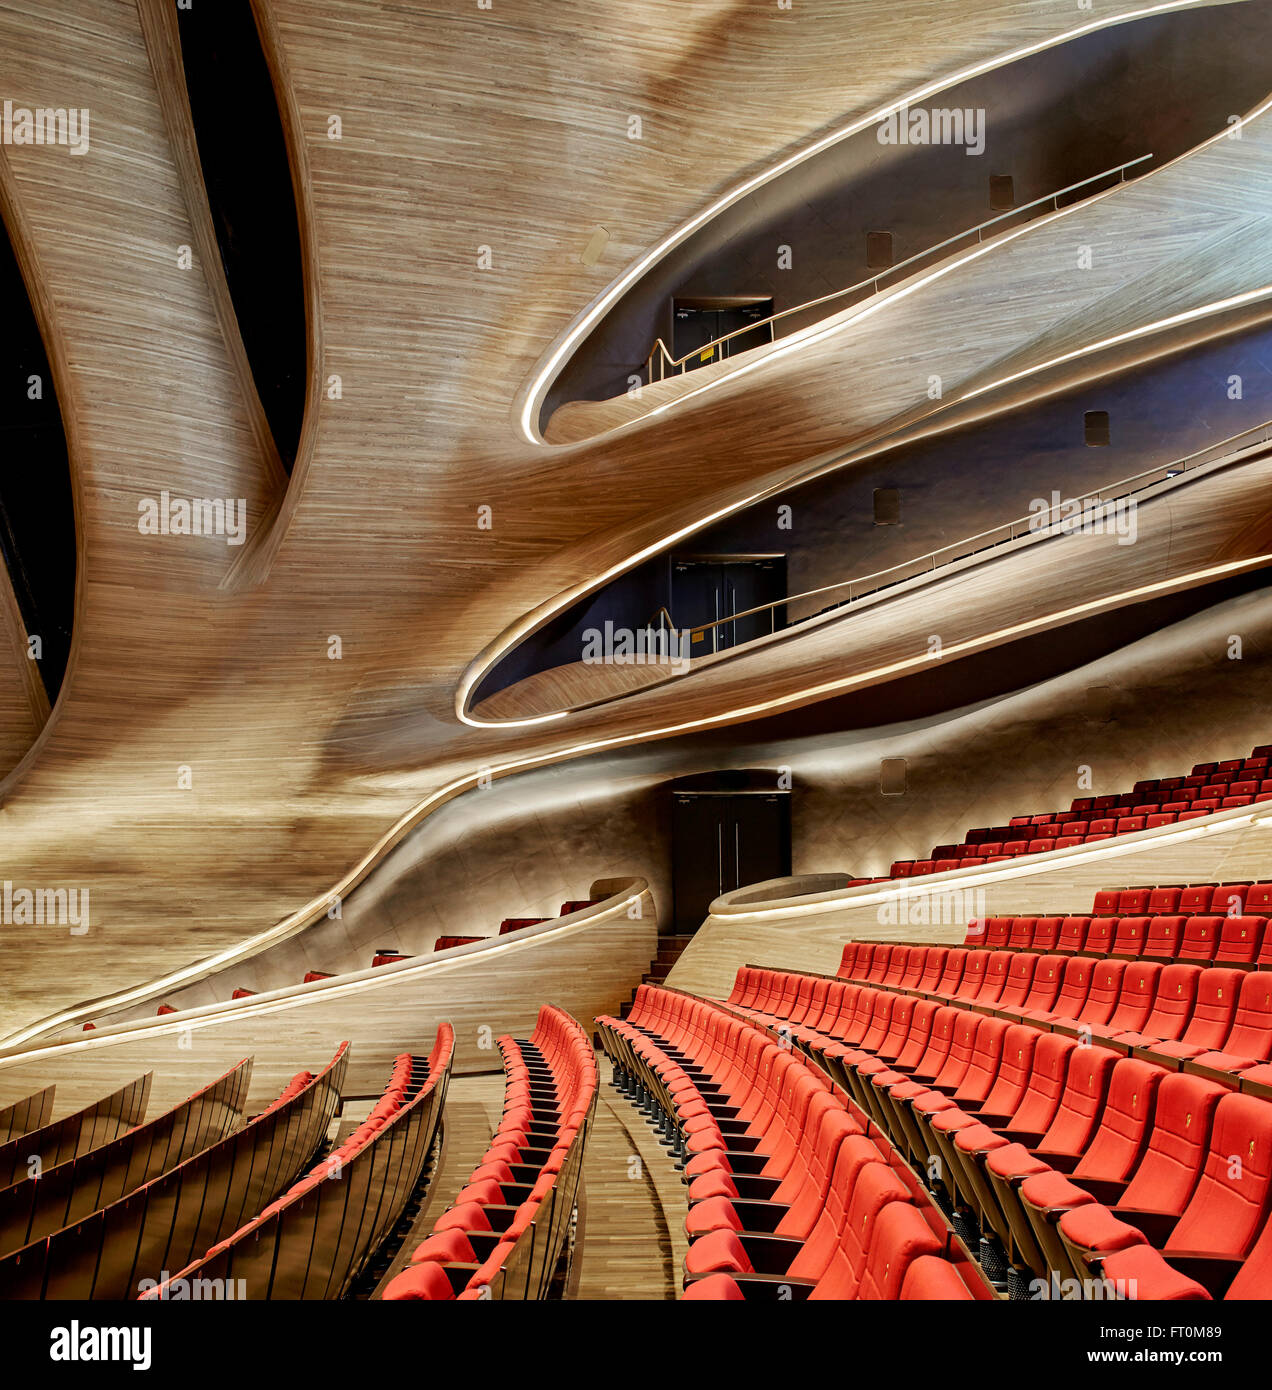 multi storey grand theatre interior stock photos & multi storey